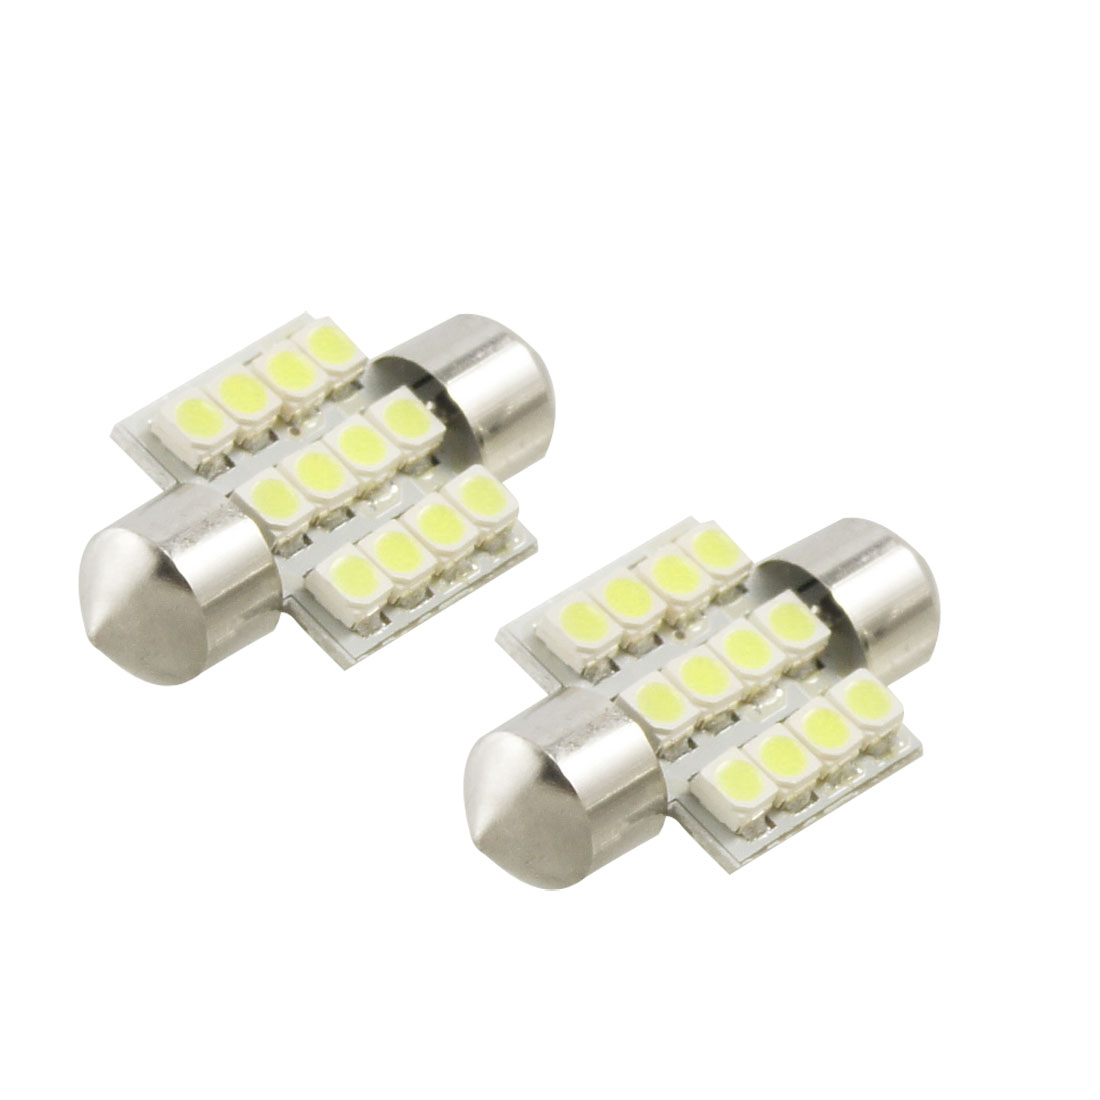 "2 Pcs 12V White 1.25"" 31mm 12-SMD 3528 DE3175 DE3022 LED Bulbs For Car Dome Lights"